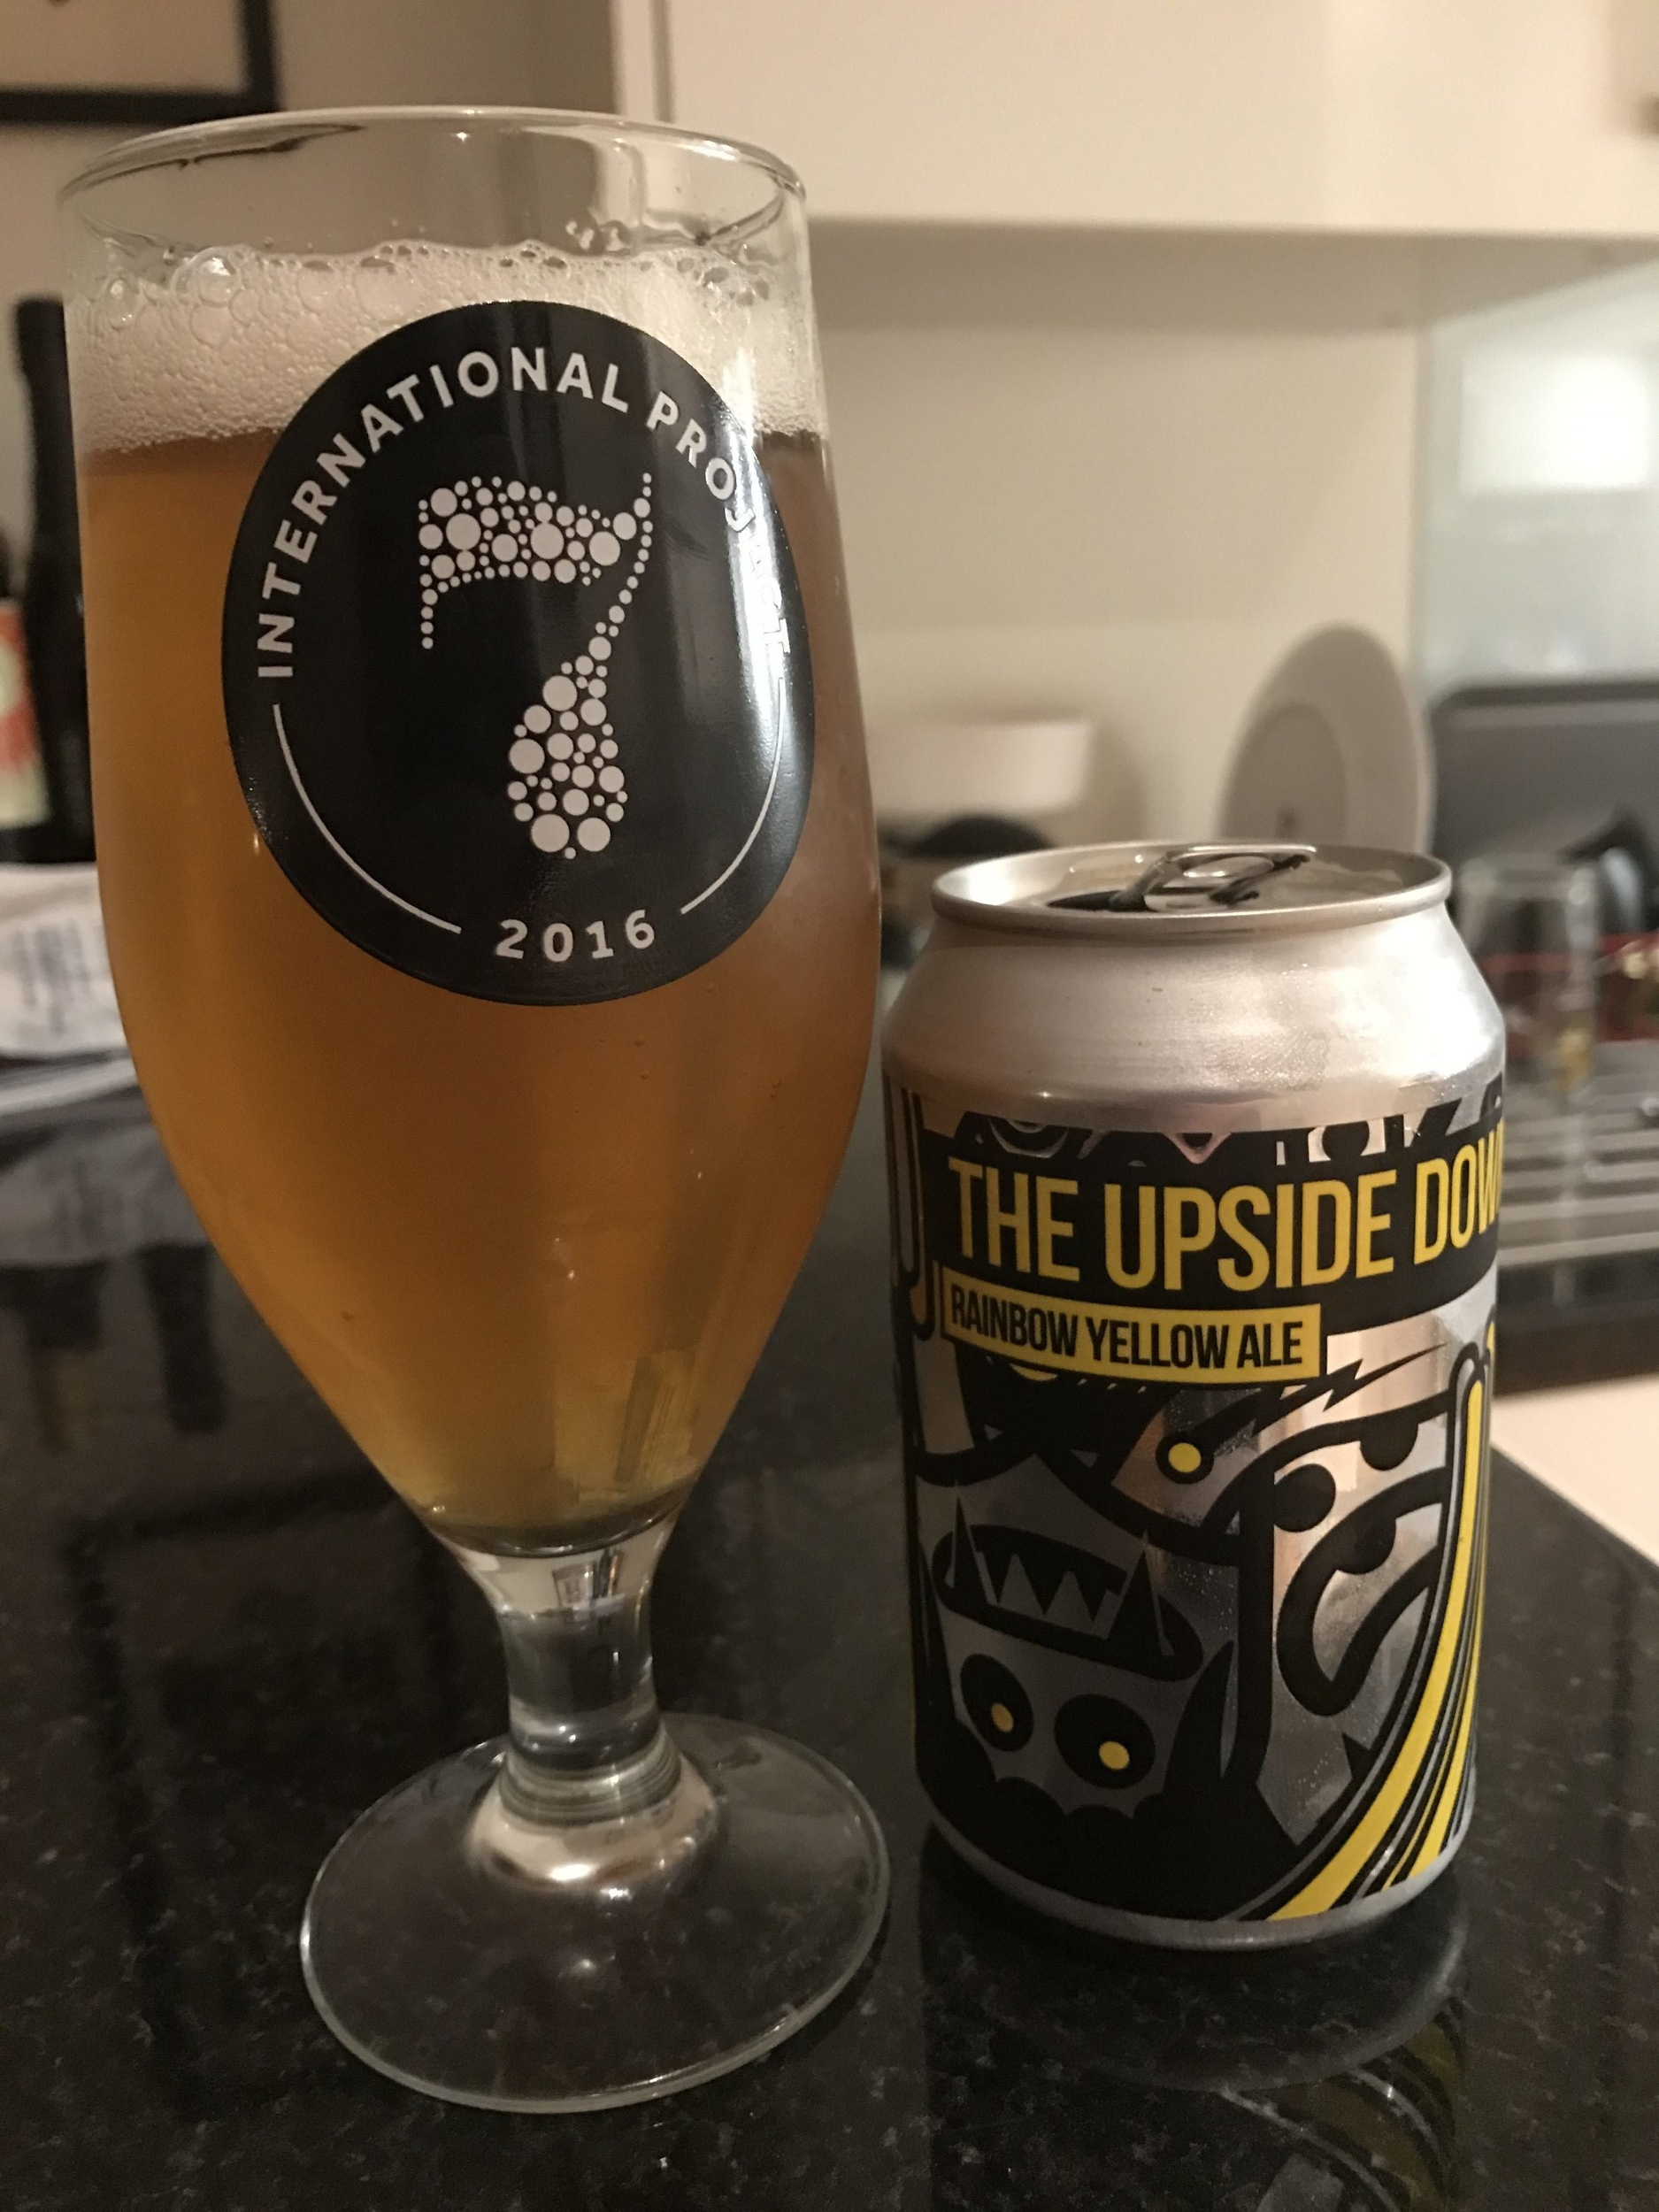 """The Upside Down – Kettle-Soured, Tropical Fruit-Witbier 6% //Magic Rock x Fork Brewing - What the booklet says:We were delighted to be drawn with Fork Brewing of Wellington headed up by our friend Kelly Ryan (ex Thornbridge / Fyne Ales), Nick met with Kelly and CBC and a plan was hatched to deliver as much fruity, spicy, hoppy, mouth filling (and reminiscently yellow) pleasure as possible.The beer starts with a complex malt bill featuring our usual Golden Promise base malt but also a large proportion of Wheat, Rye and Oats. It's then kettle soured to a PH of 3.6 using a pure lactic strain. Coriander and Tumeric were added into the boil to add zest, spices and colour and Citra and Equinox hops added to the whirlpool to add tropical flavours to the body of the beer.The beer was then wholly fermented with 'Brett Trois' a recently re-classified Saccharomyces strain originally thought to be Brettanomyces and """"used traditionally for wild yeast-like fermentations, producing a slightly tart beer with delicate characteristics of mango and pineapple"""".During (and post) fermentation the beer was then dry hopped with more Citra and Equinox as well as Mosaic and Simcoe to deliver a deeply tropical hop aroma and flavour augmented by the addition of both passionfruit and mango juice.Expectations:Thankfully nothing to do with the other Upside Down- no Demogorgons were used in the brewing of this beer. I did spot the dreaded C word (coriander) which is nearly as frightening but hopefully the other flavours can mask it.Reality:First of all, I have to say that, like all Magic Rock beer, I absolutely love the can art for this beer. Secondly, I'm happy that I can't really detect too much coriander here. The beer itself smells pretty horrific so I was pleasantly surprised that it tastes pretty good. The fruity mango aftertaste really lifts the beer and masks the 6% ABV.I often struggle a little with witbiers as a style and find most of them to taste very similar so I'm glad this one doesn"""